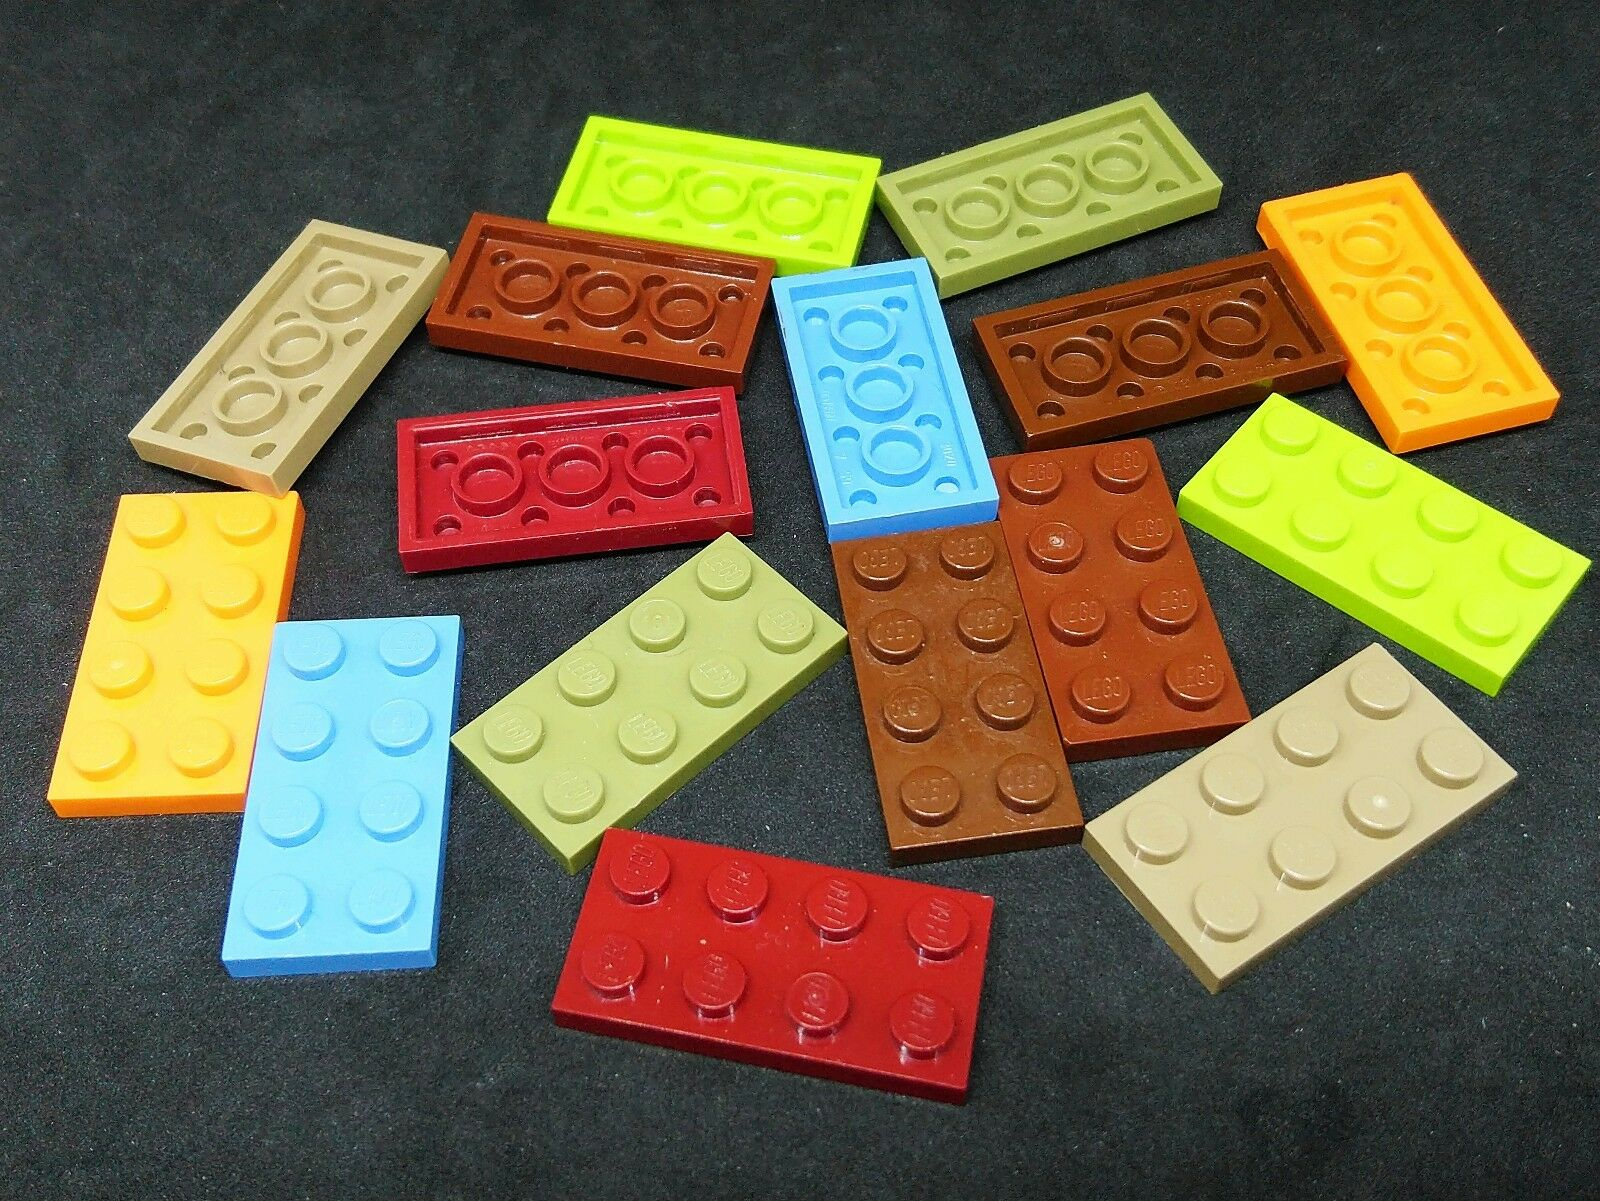 LEGO Lot of 25 Blue 2x4 Plate Pieces